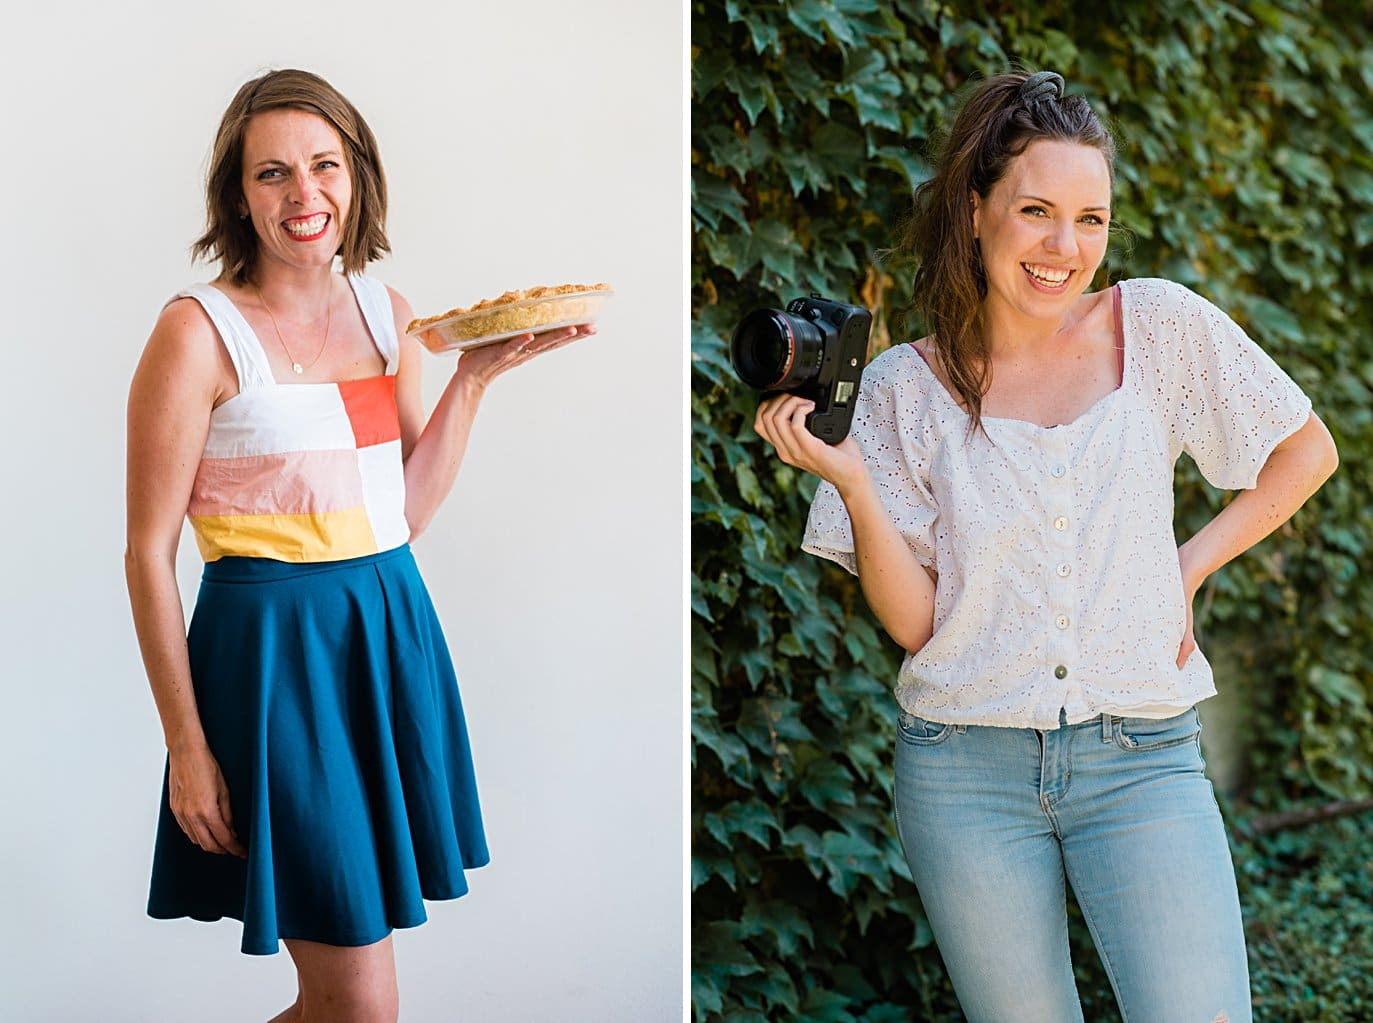 headshots of Jill from the Treatery and Caitlyn from Cait Swithers photography